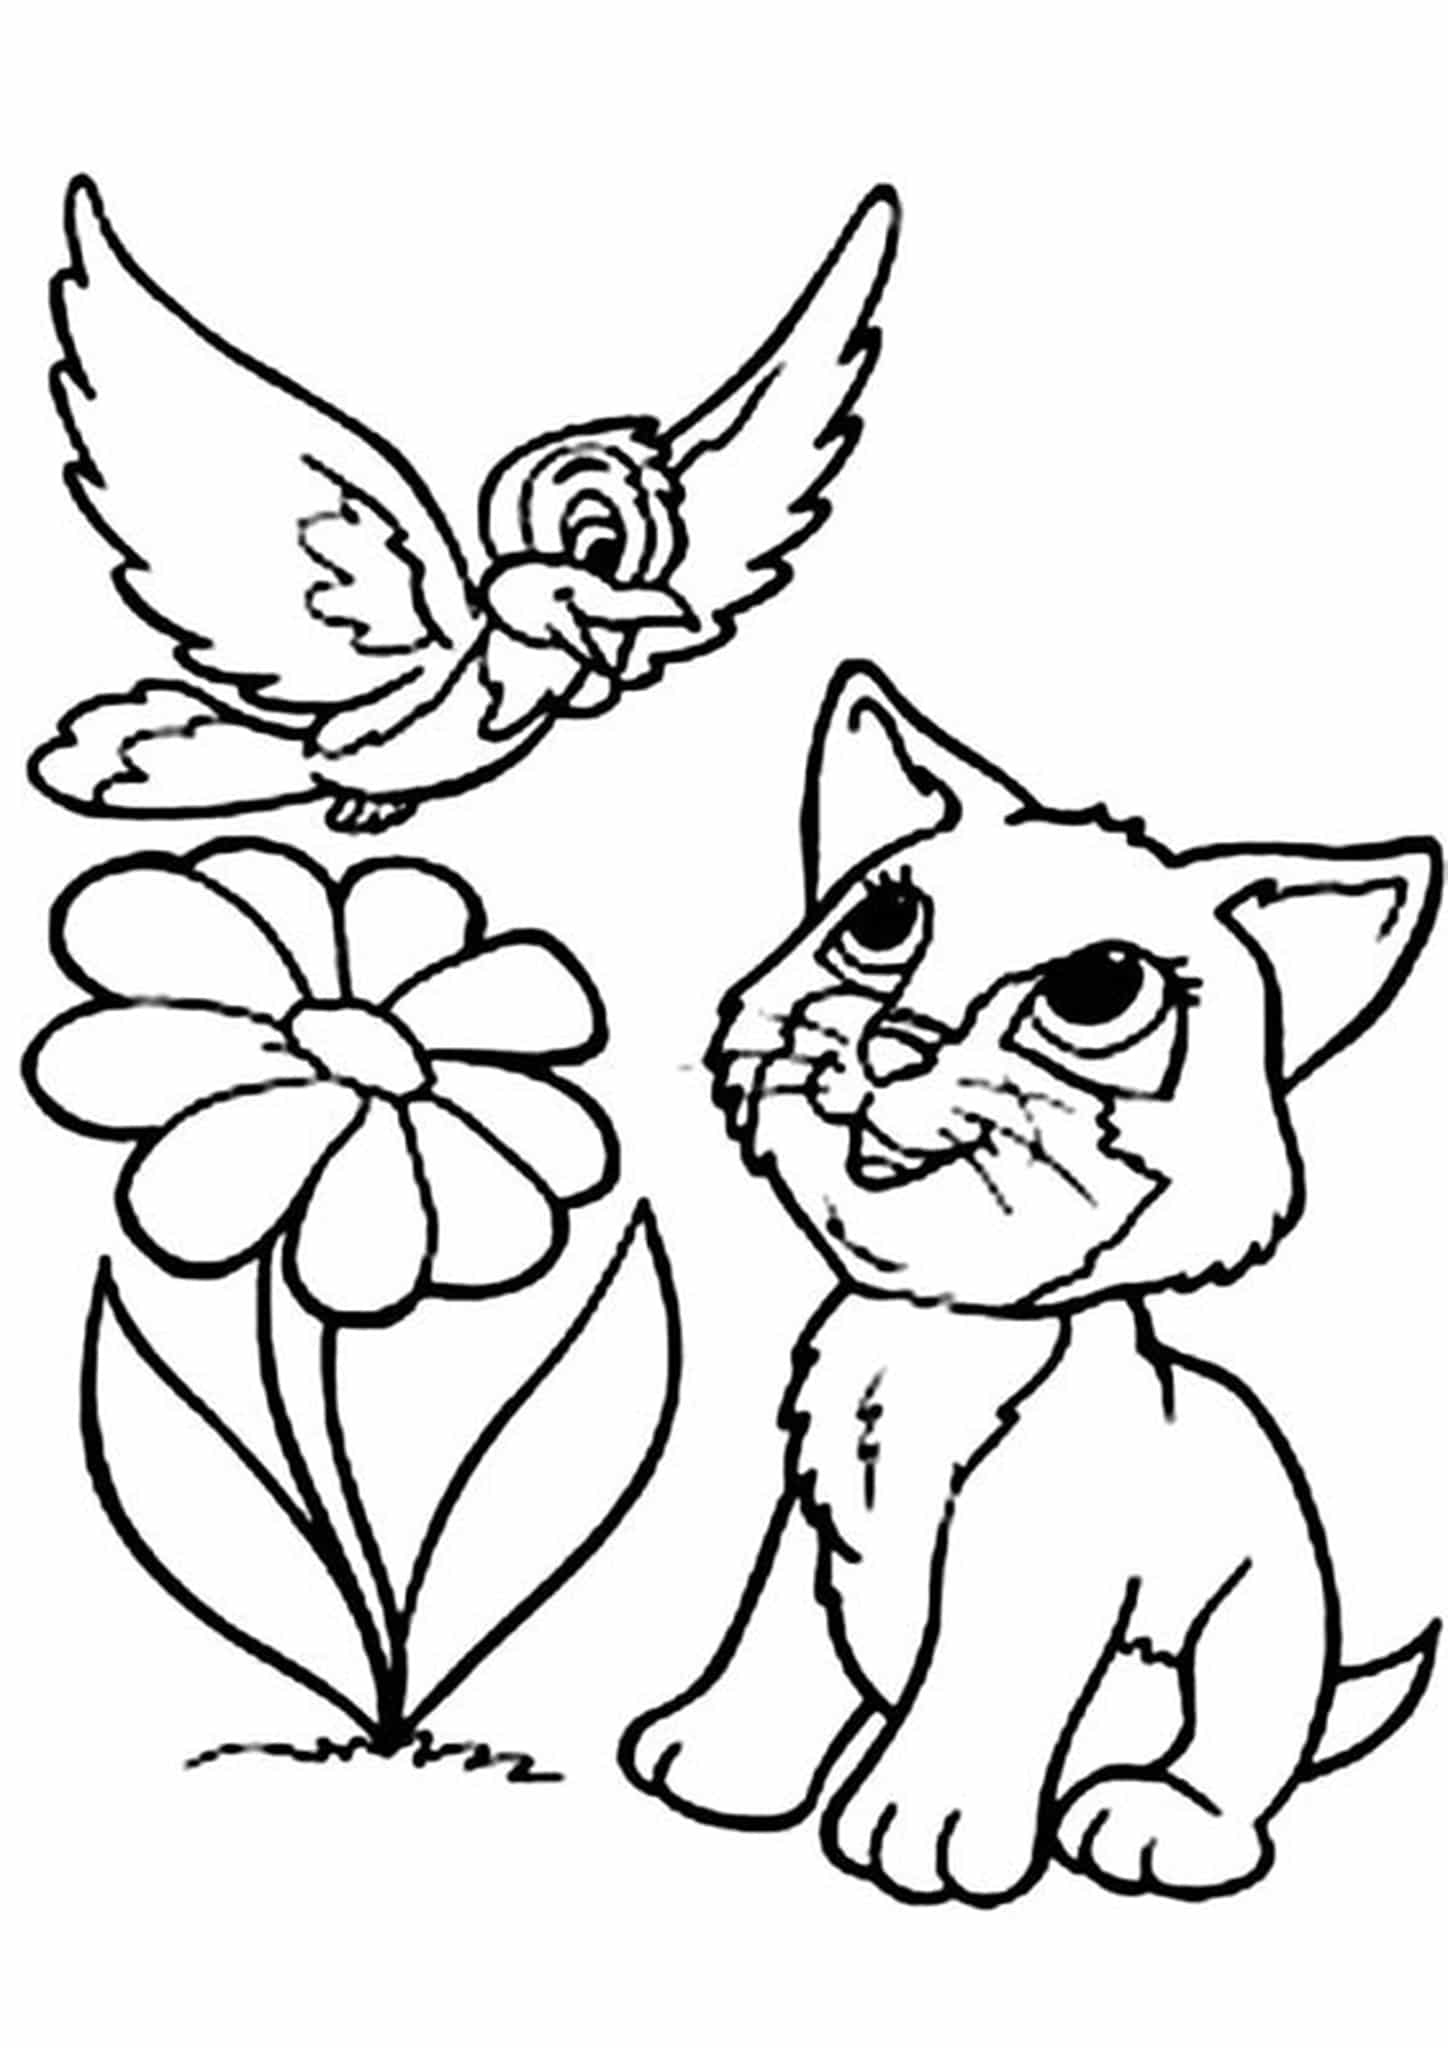 coloring kitty free easy to print kitten coloring pages tulamama coloring kitty